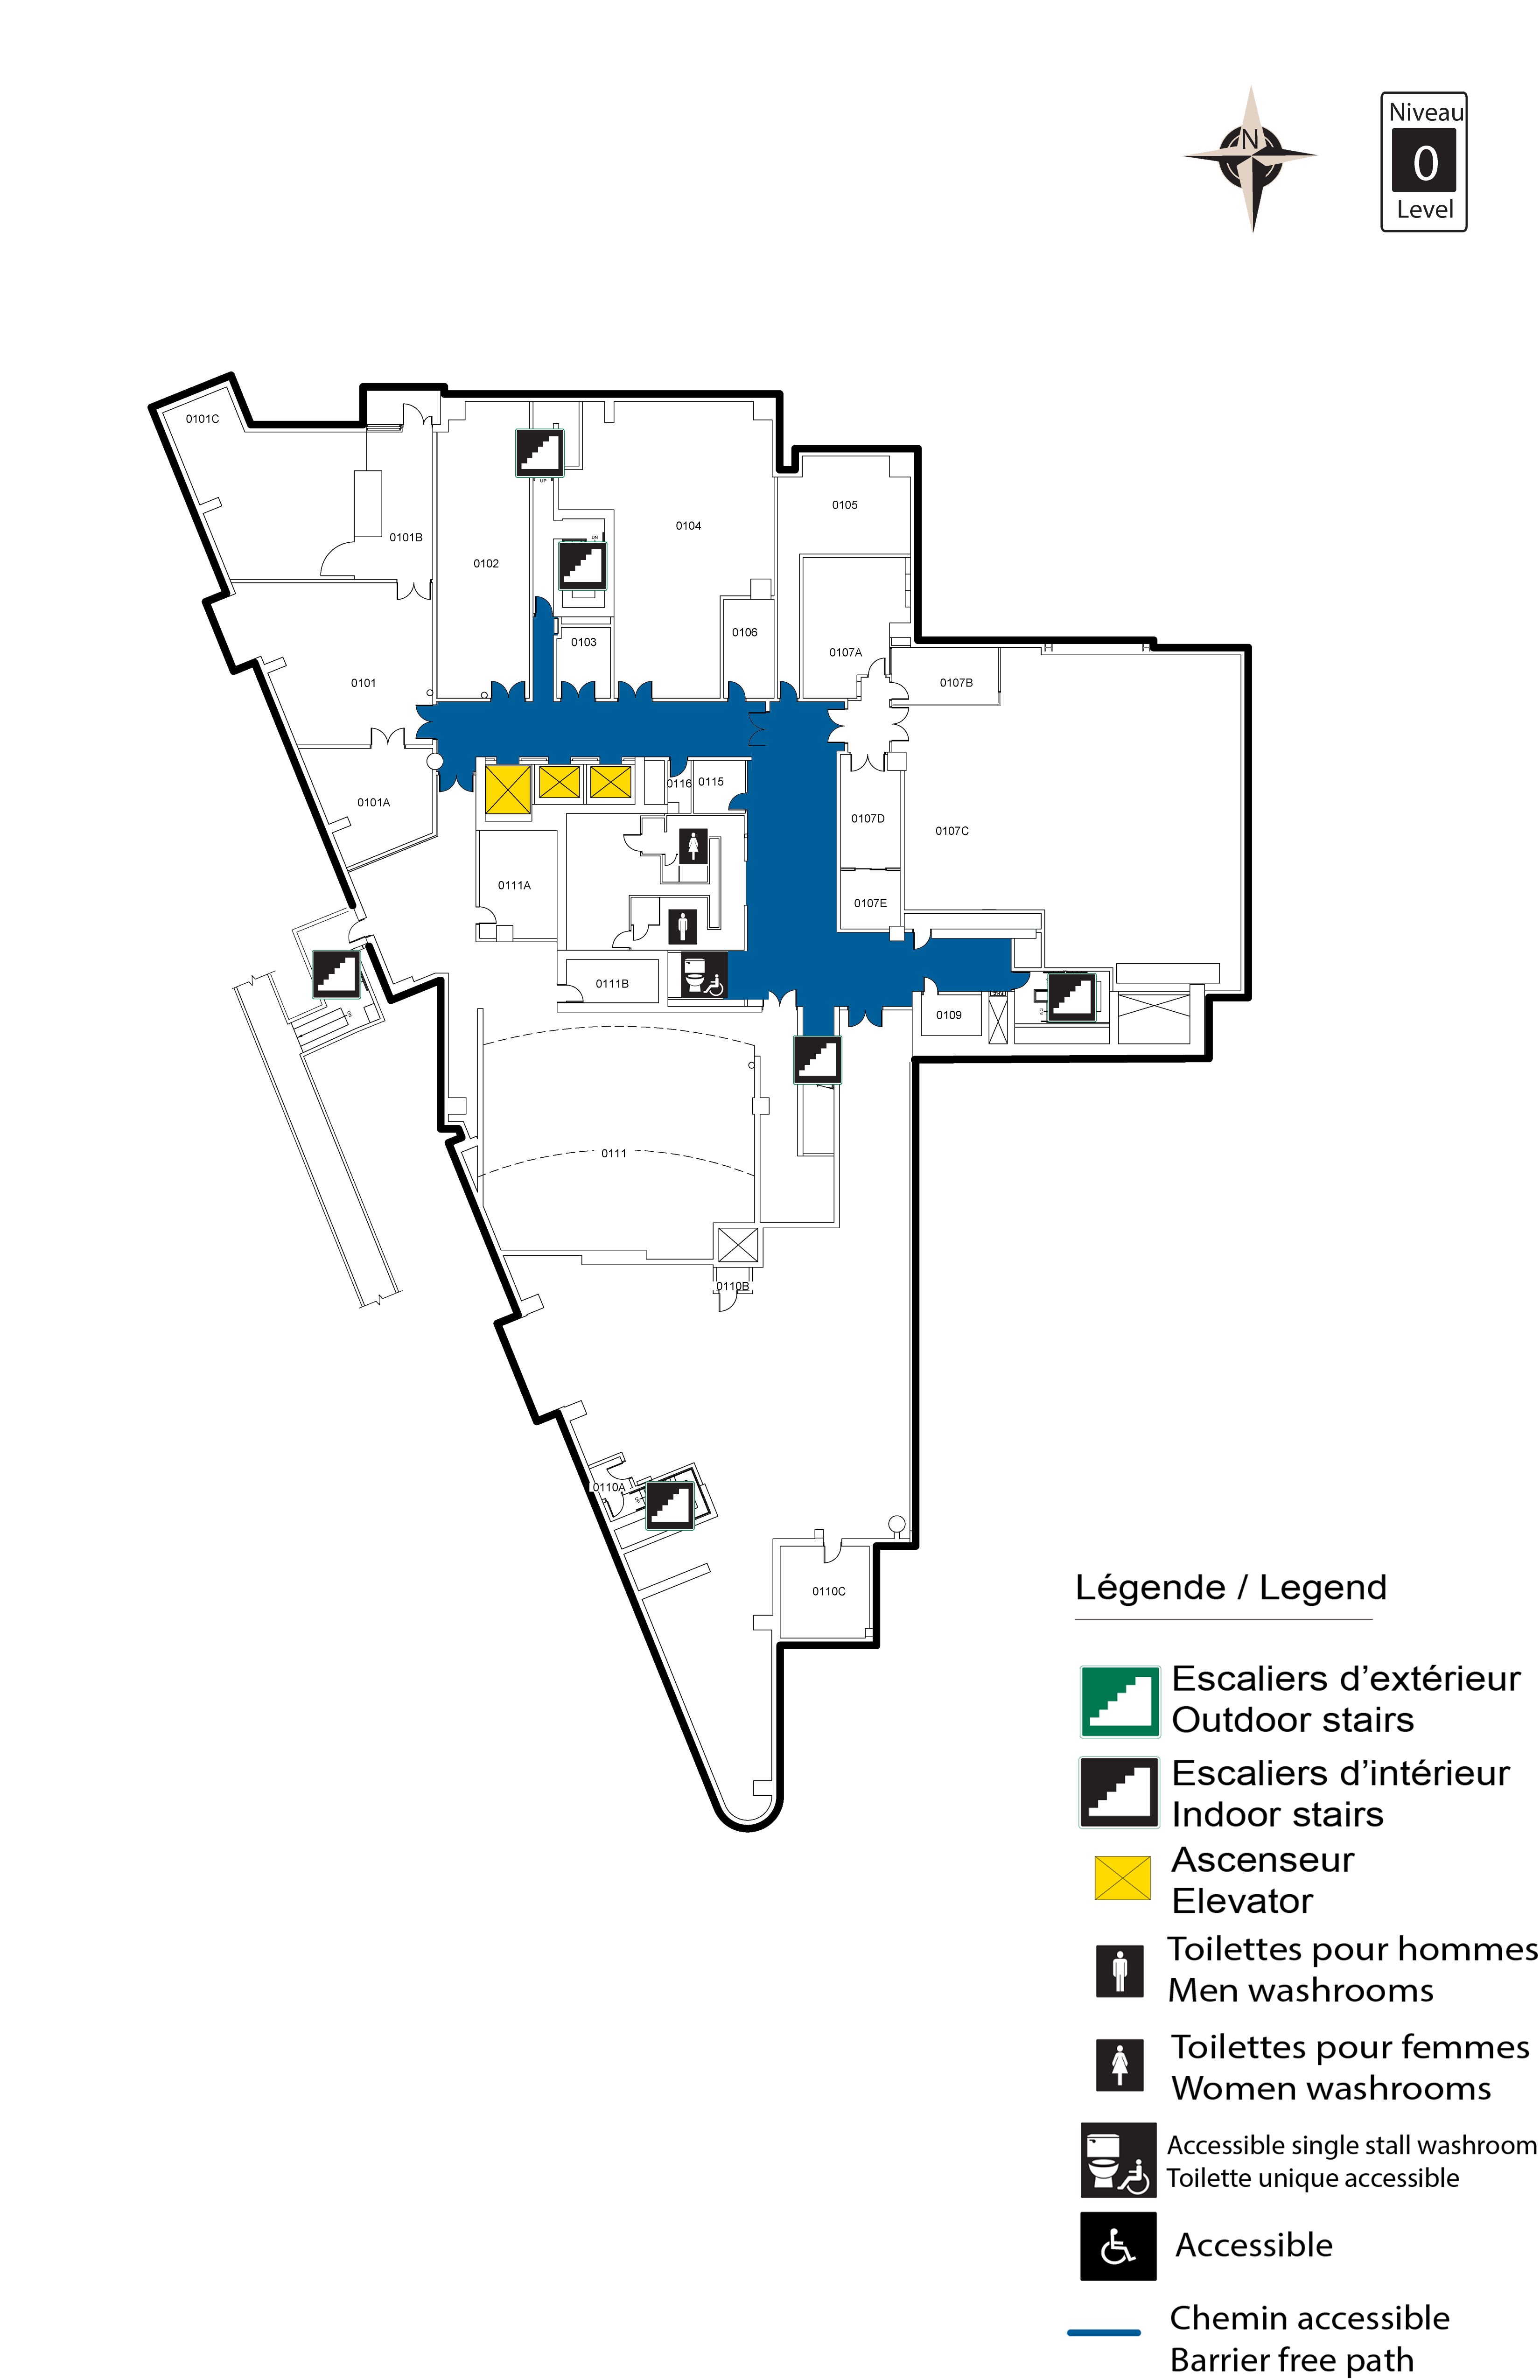 Accessible Map - FSS Level 0